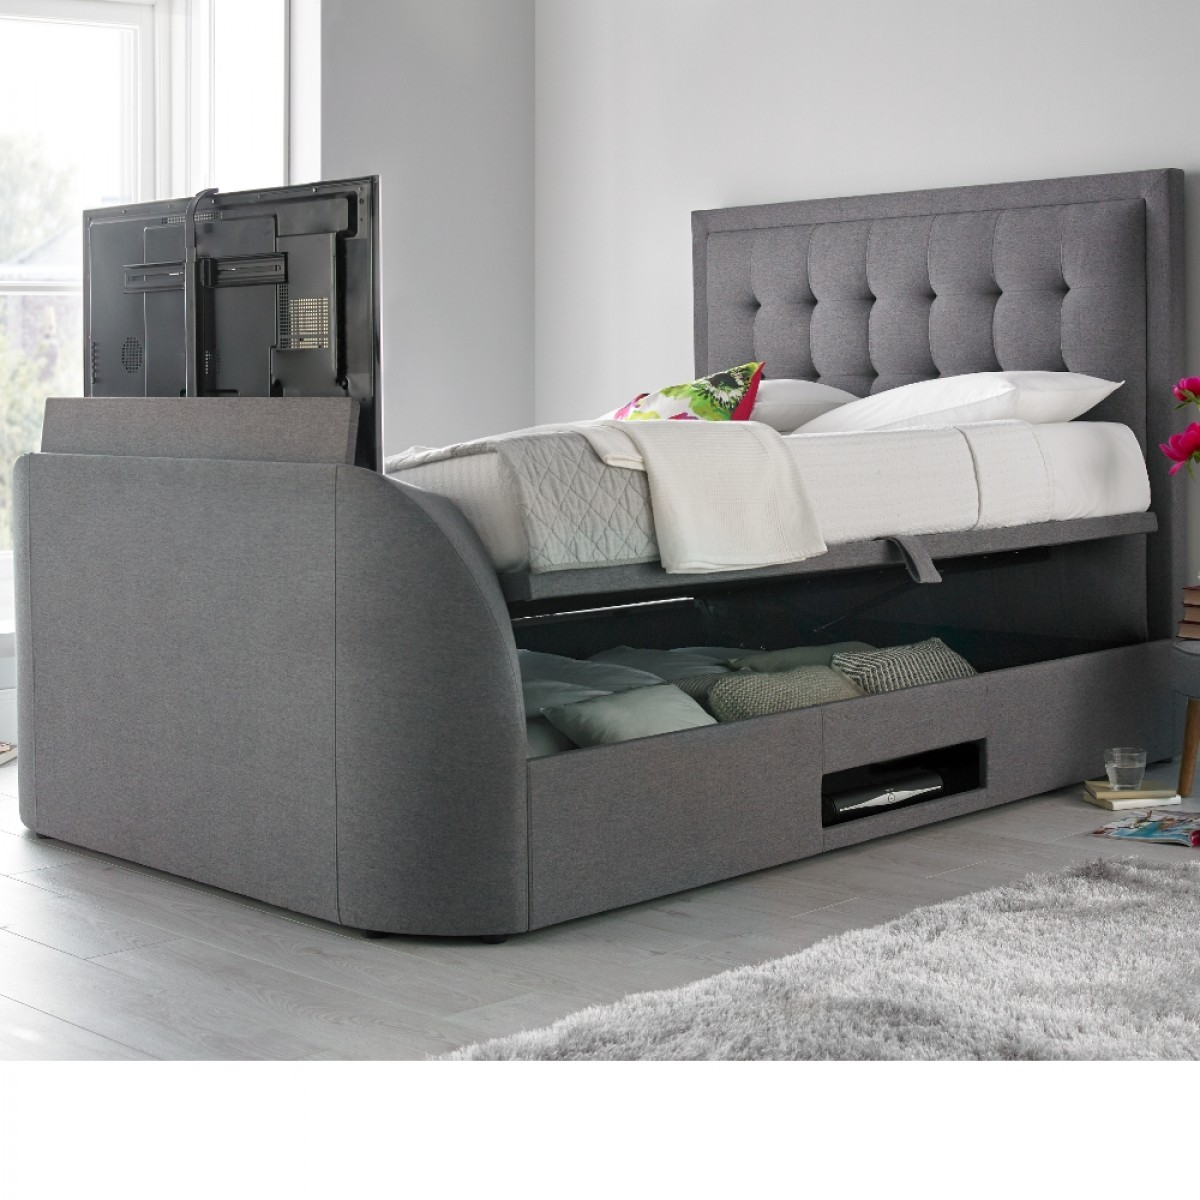 Headboards Double Bed